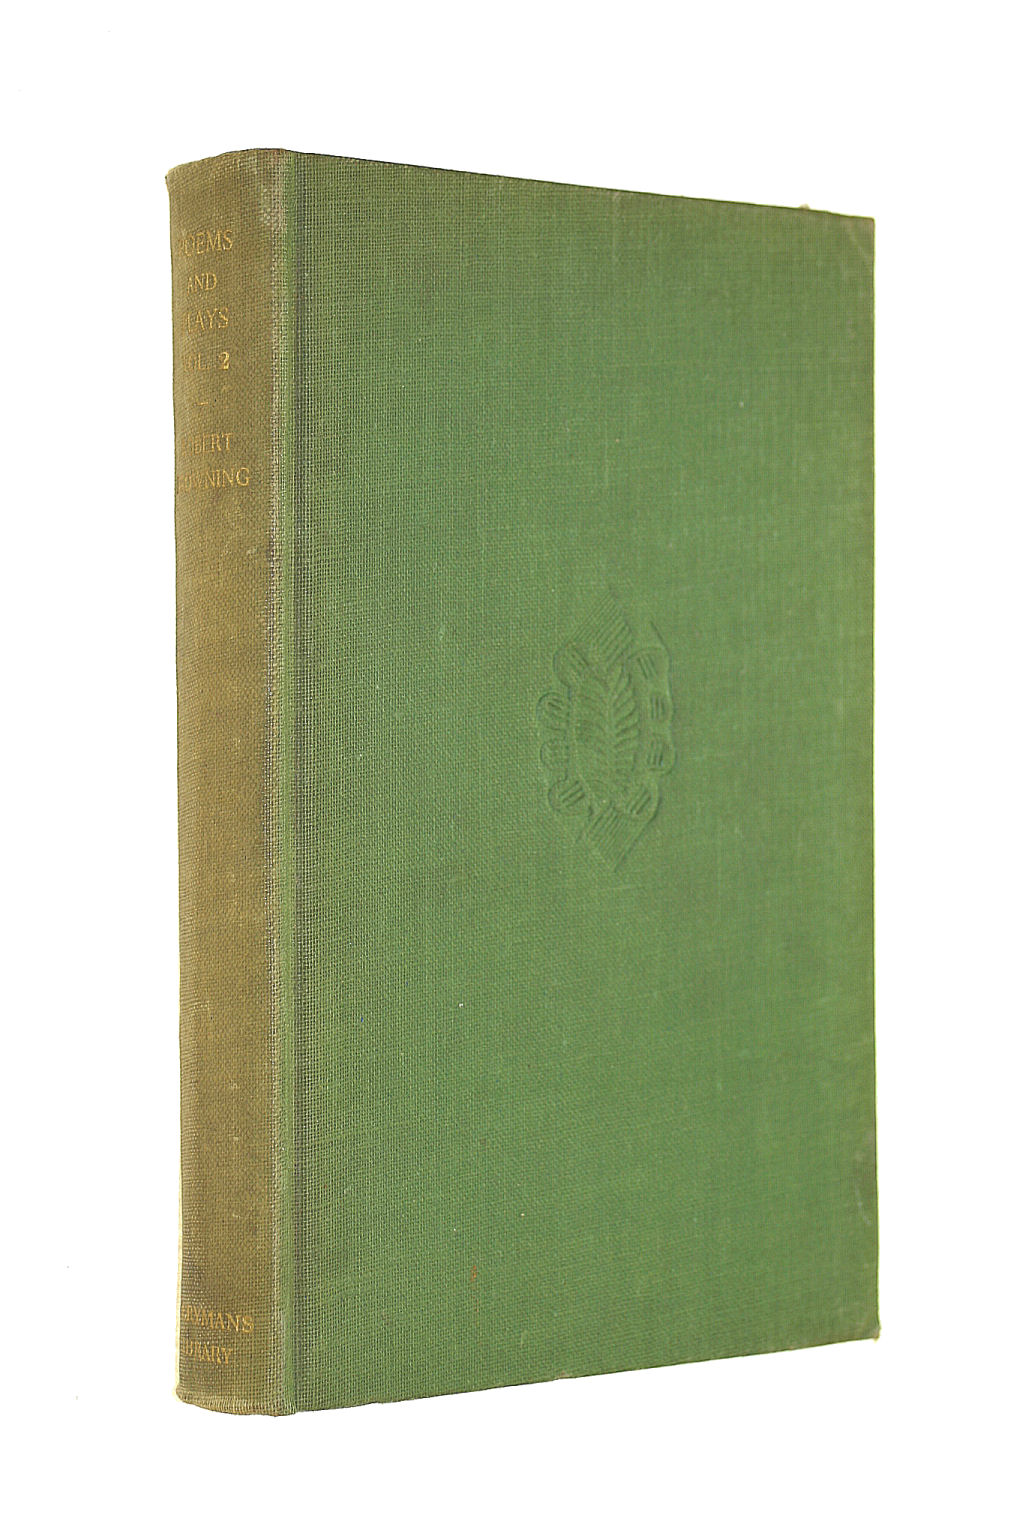 Image for The Poems & Plays Vol 2. Robert Browning 1844 - 1864. Everyman's Library No. 42